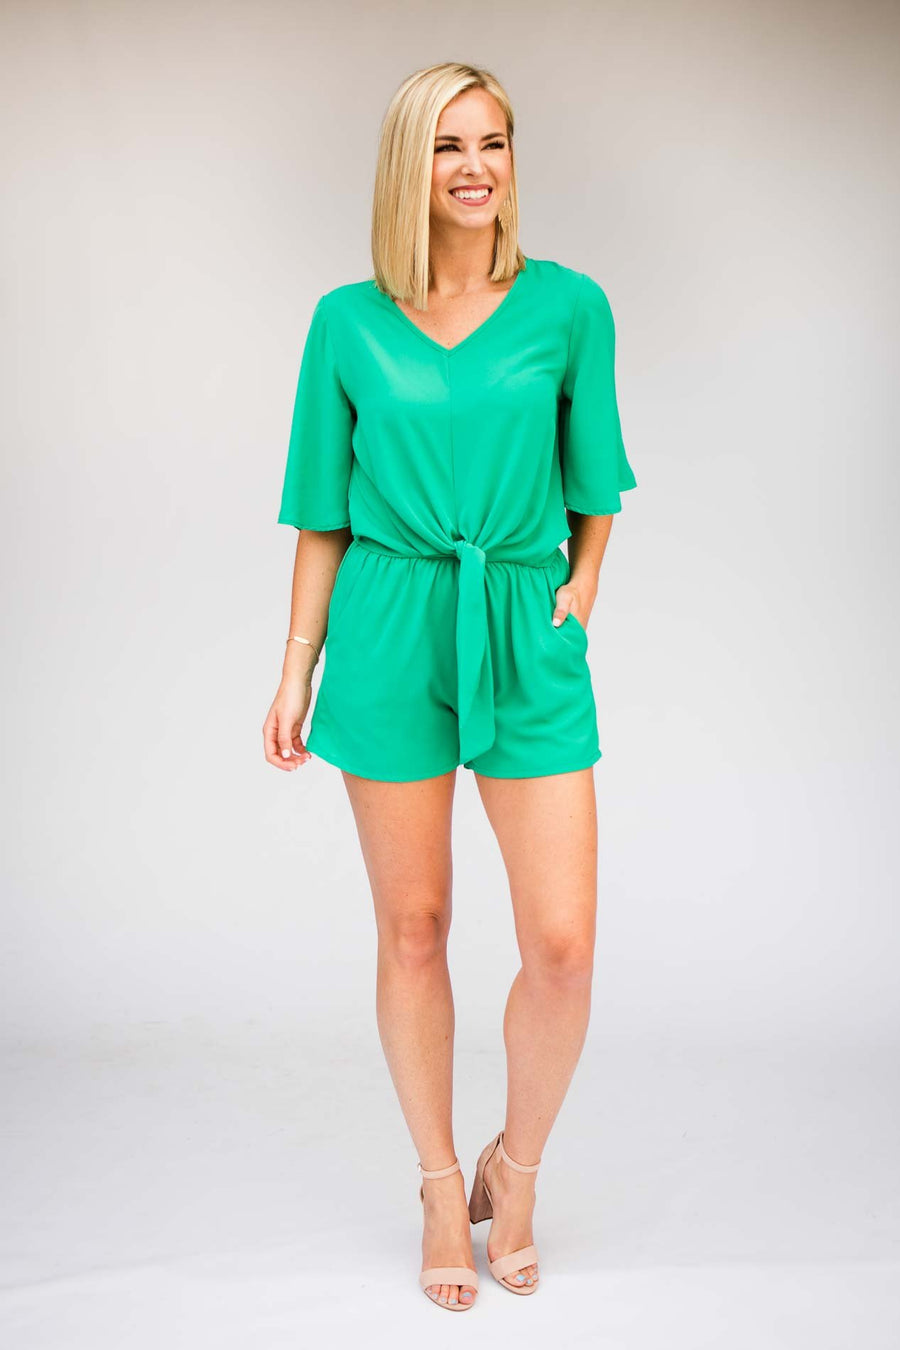 21839d1768d3a Rompers Simply Irresistible Tie Front Romper in Jade - Lotus Boutique